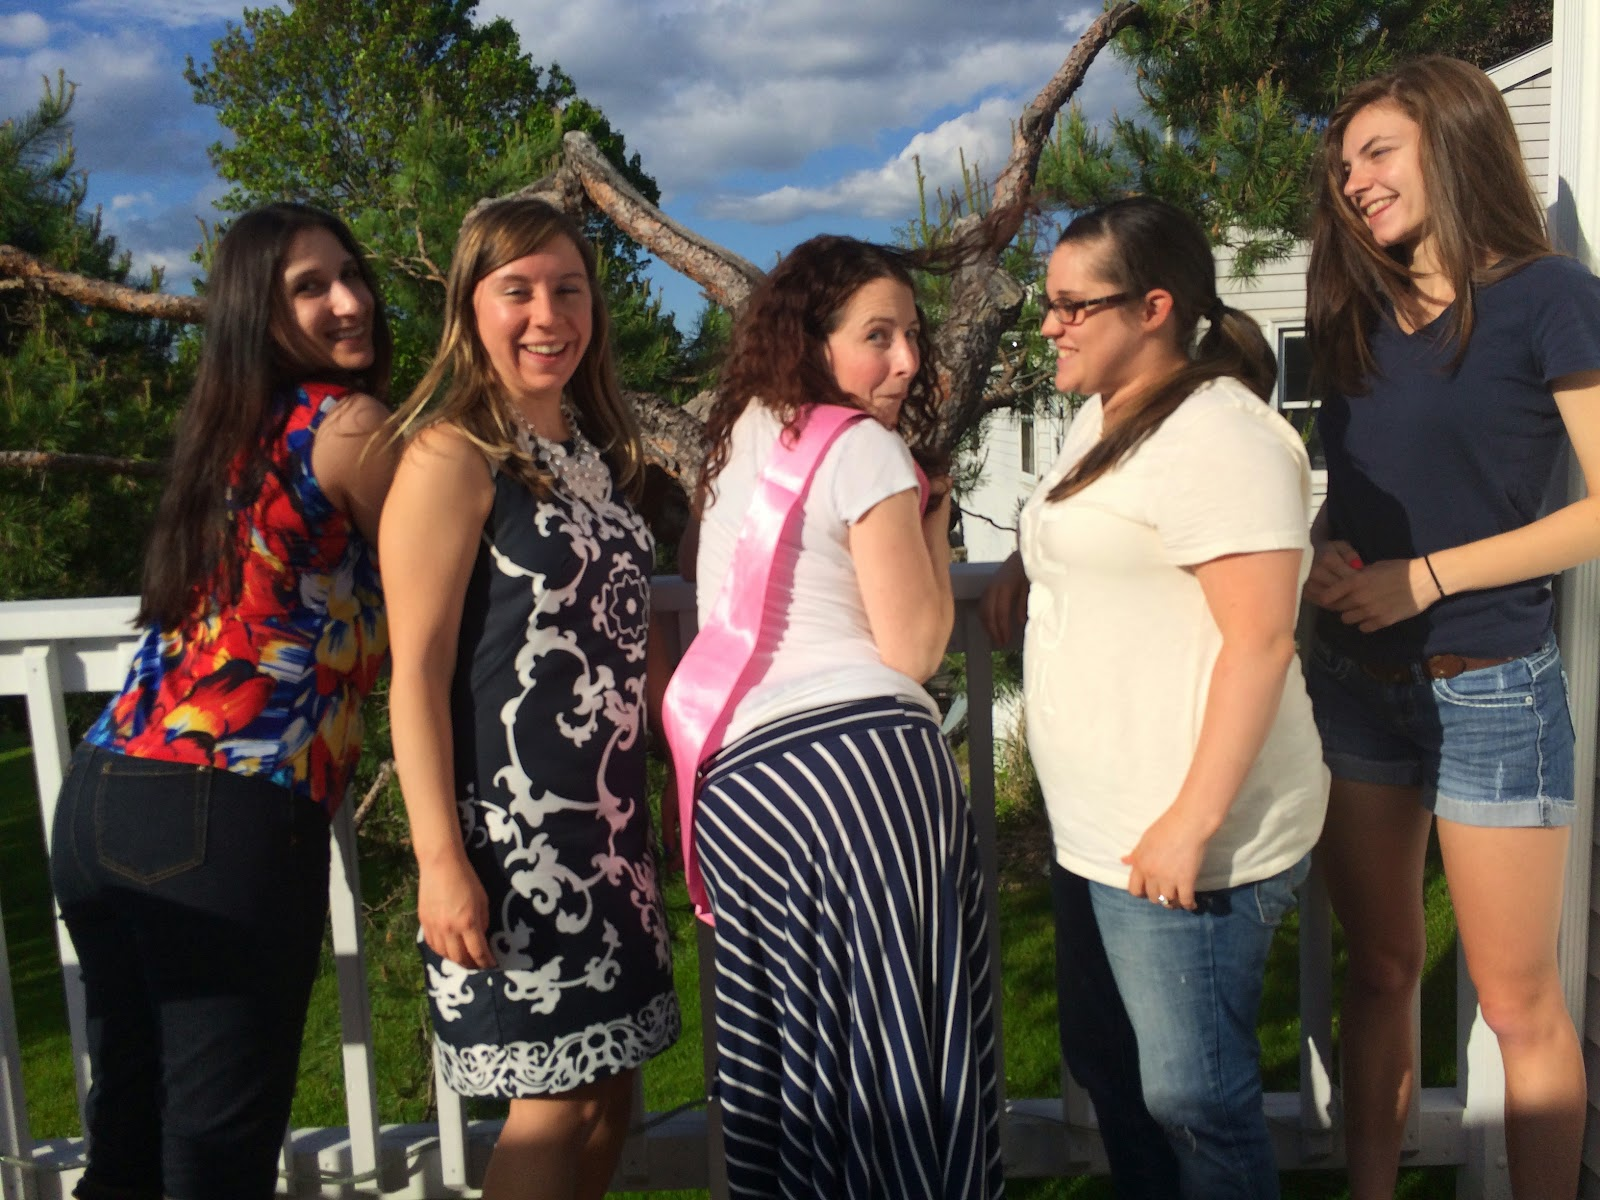 Doeblerghini Bunch:  Bridal Shower Picture Post - BM Picture with Butts!